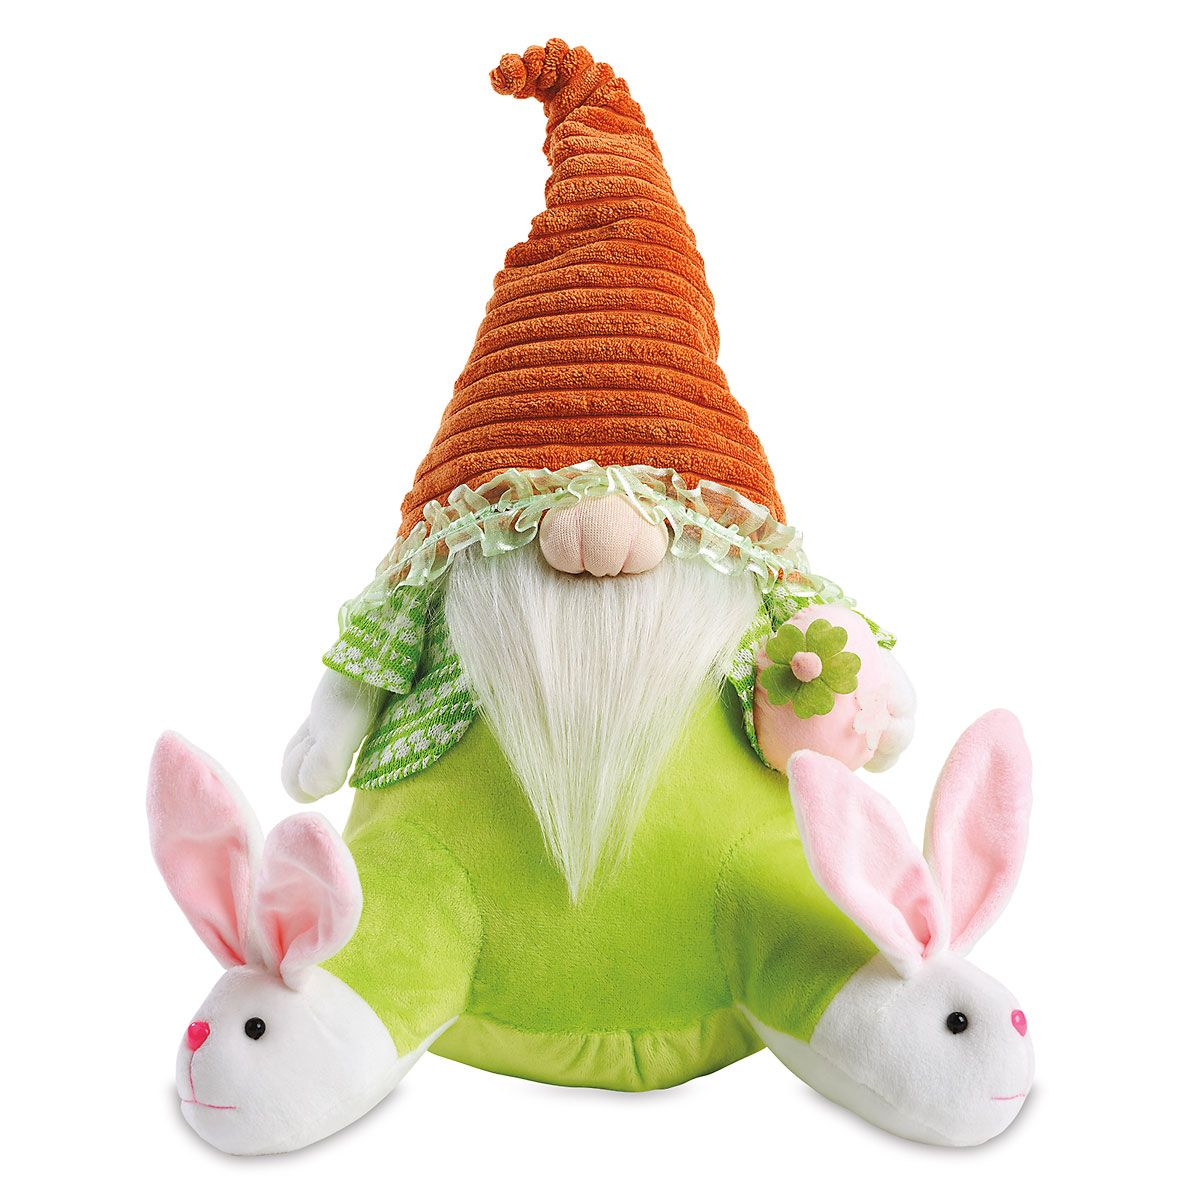 Plush Gnome with Bunny Slippers